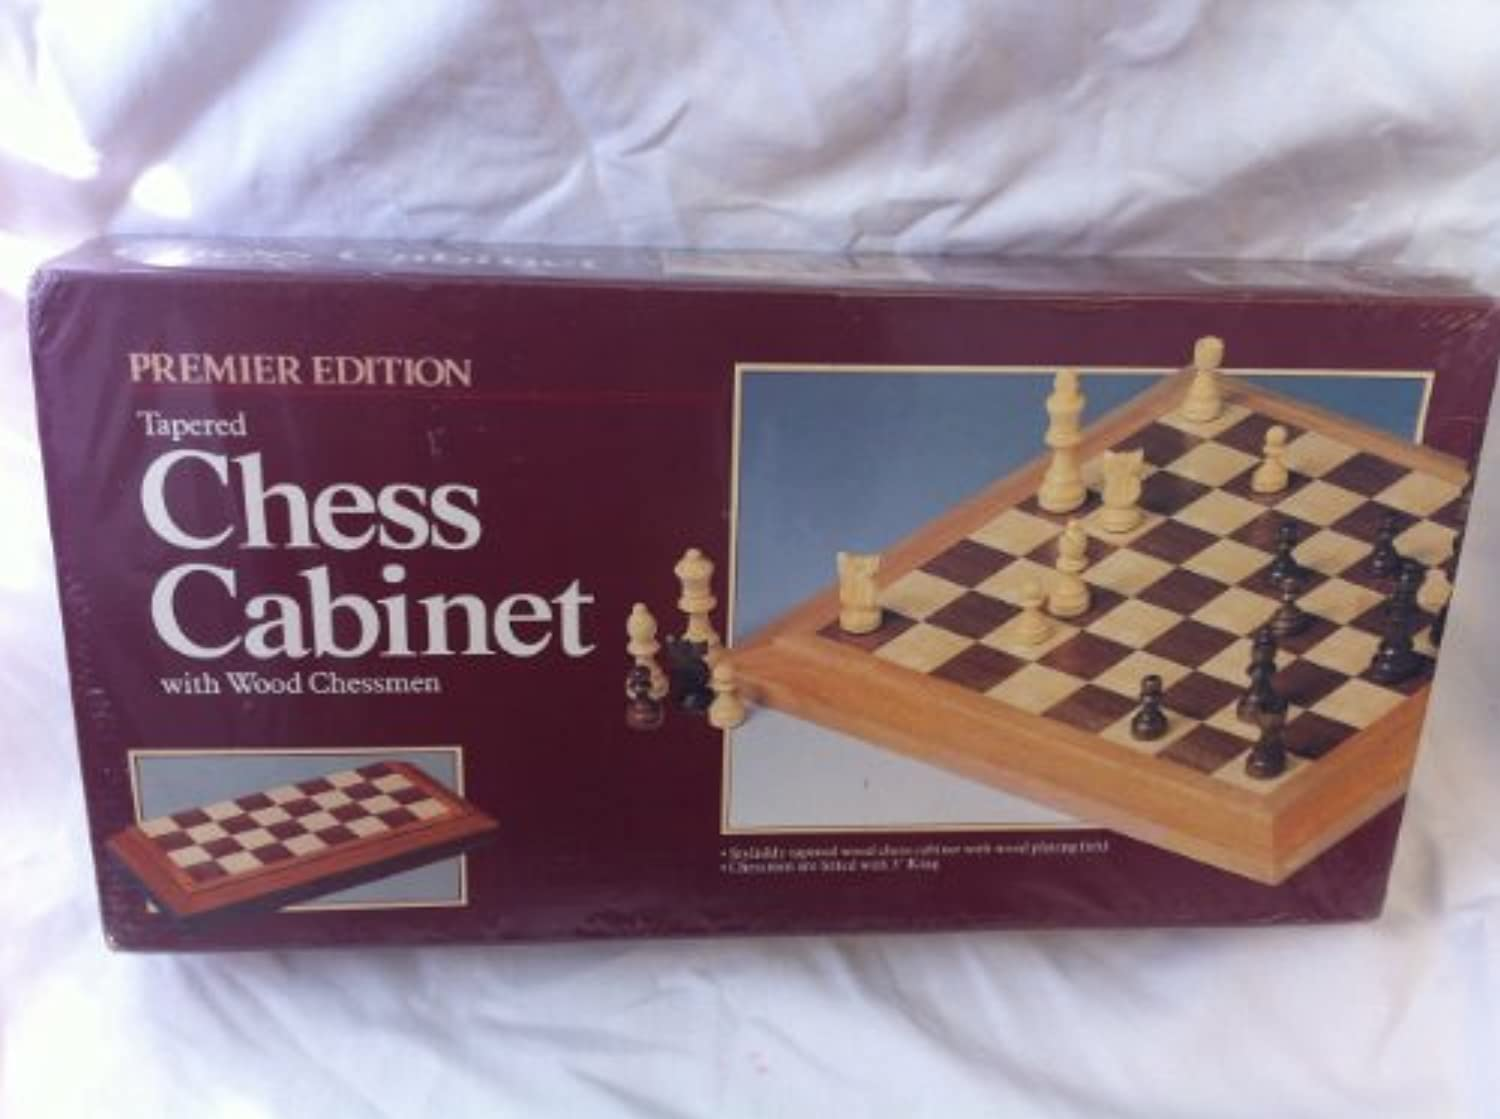 Wood Chess and Checkers Cabinet